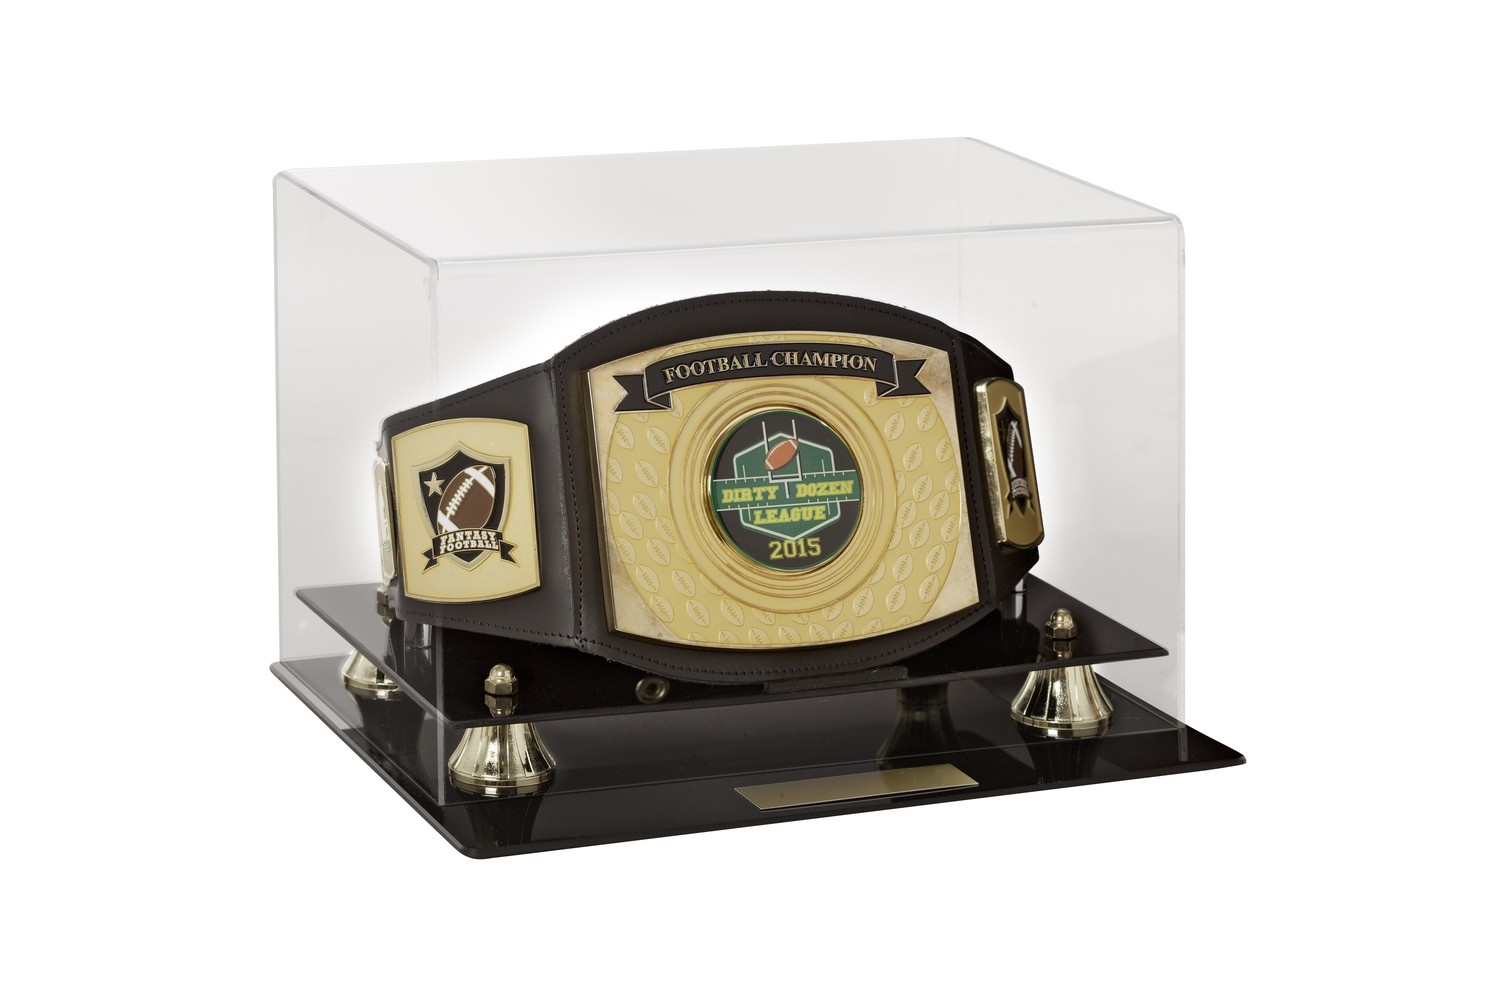 Fantasy Football Belt with case